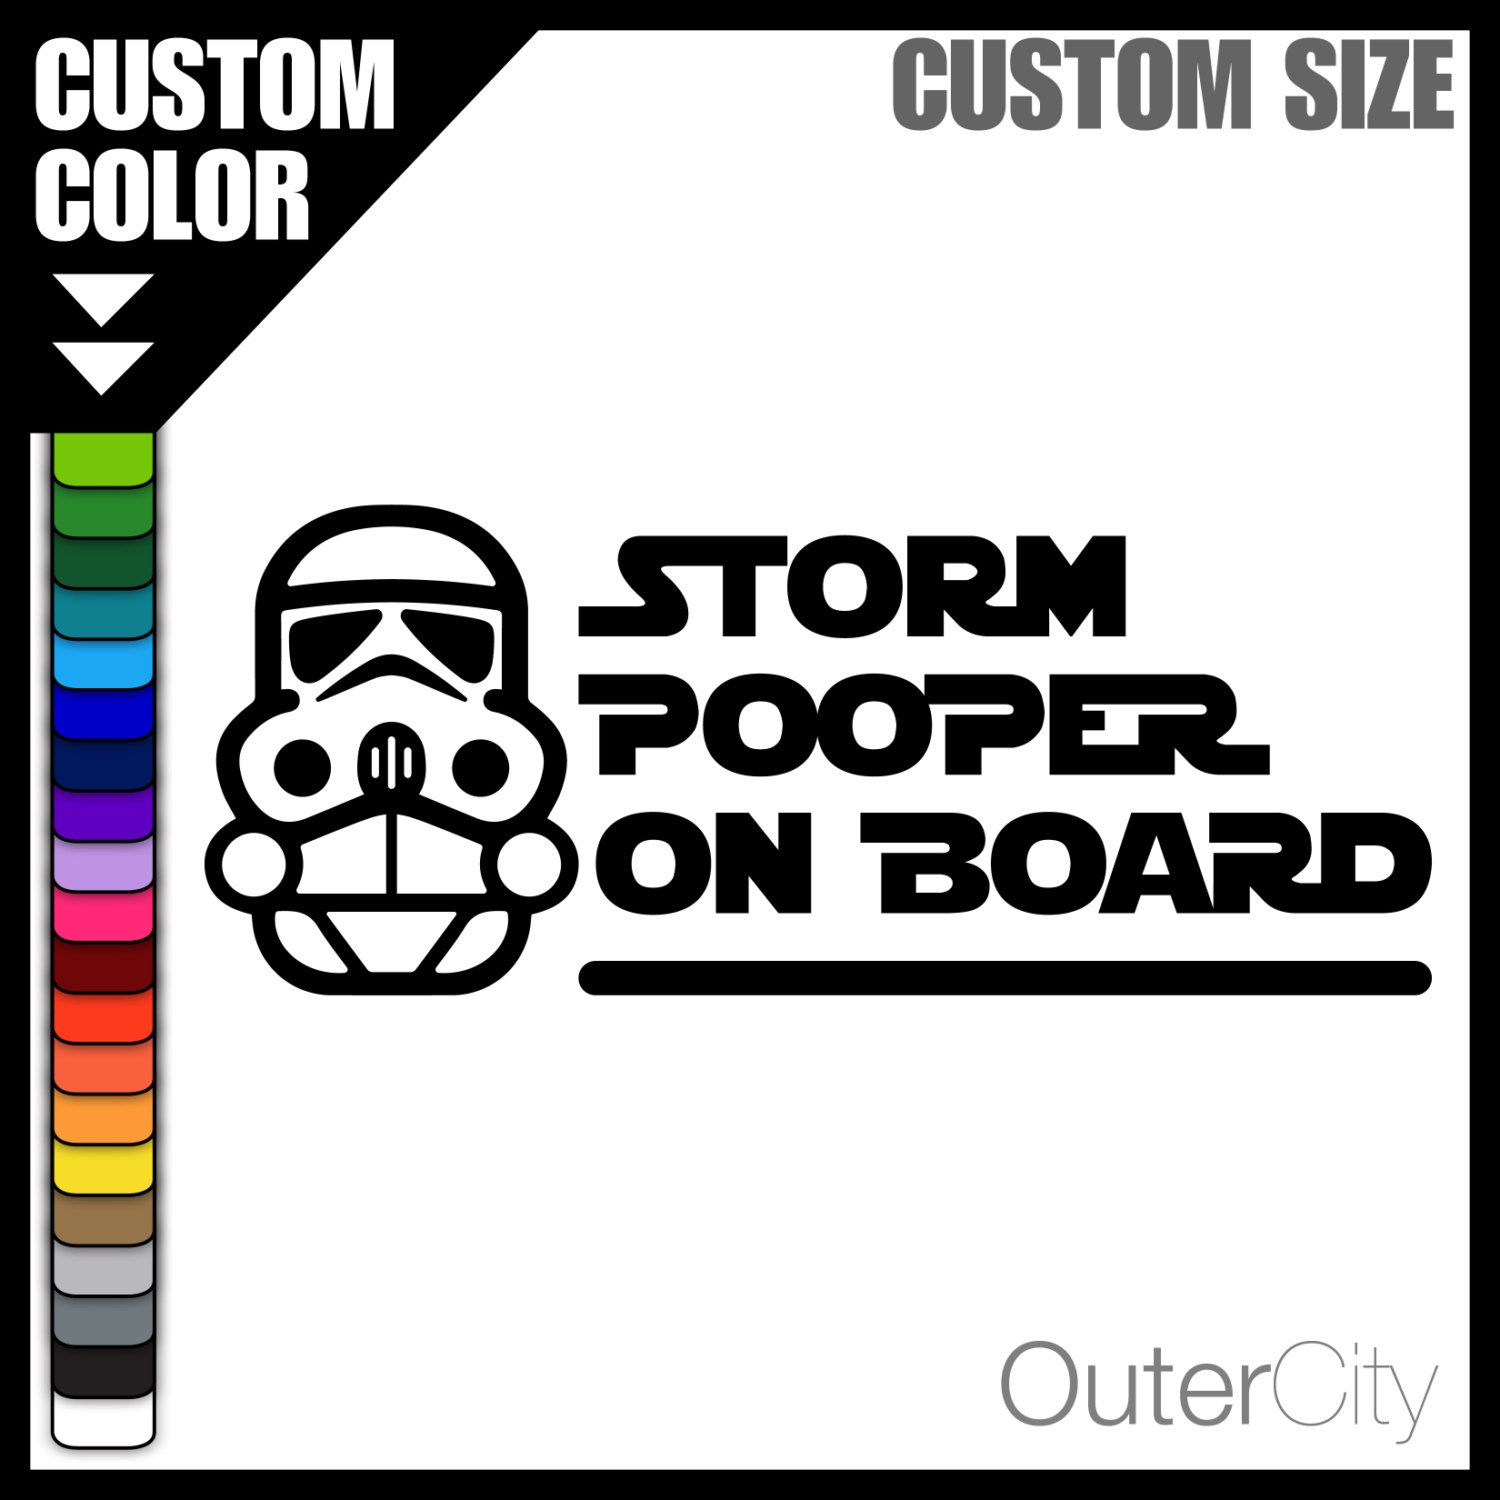 Bumper sticker maker free online - Storm Pooper On Board Baby On Board Window Label Custom Size Color Vinyl Decal Bumper Sticker Star Wars Storm Trooper Novelty Gift